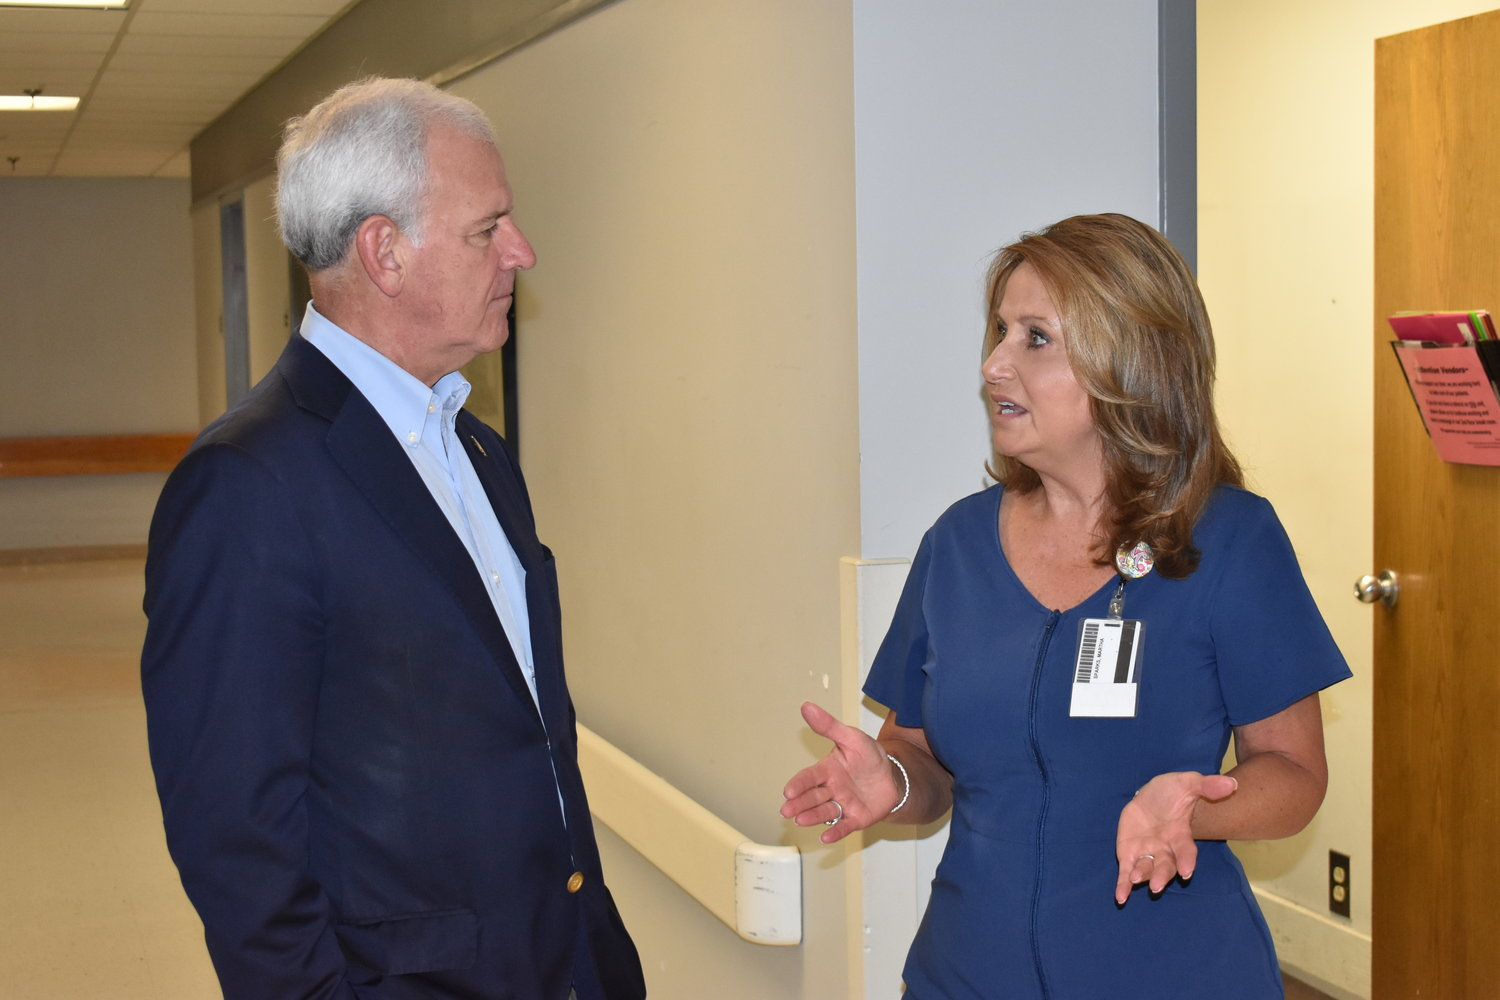 Nursing Manager Martha Sparks of the Ortho Surgical Unit at Walker Baptist Medical Center speaks to U.S. Rep. Bradley Byrne on Tuesday. The Republican congressman was visiting Jasper that day while campaigning for the U.S. Senate seat now held by Democrat Doug Jones.